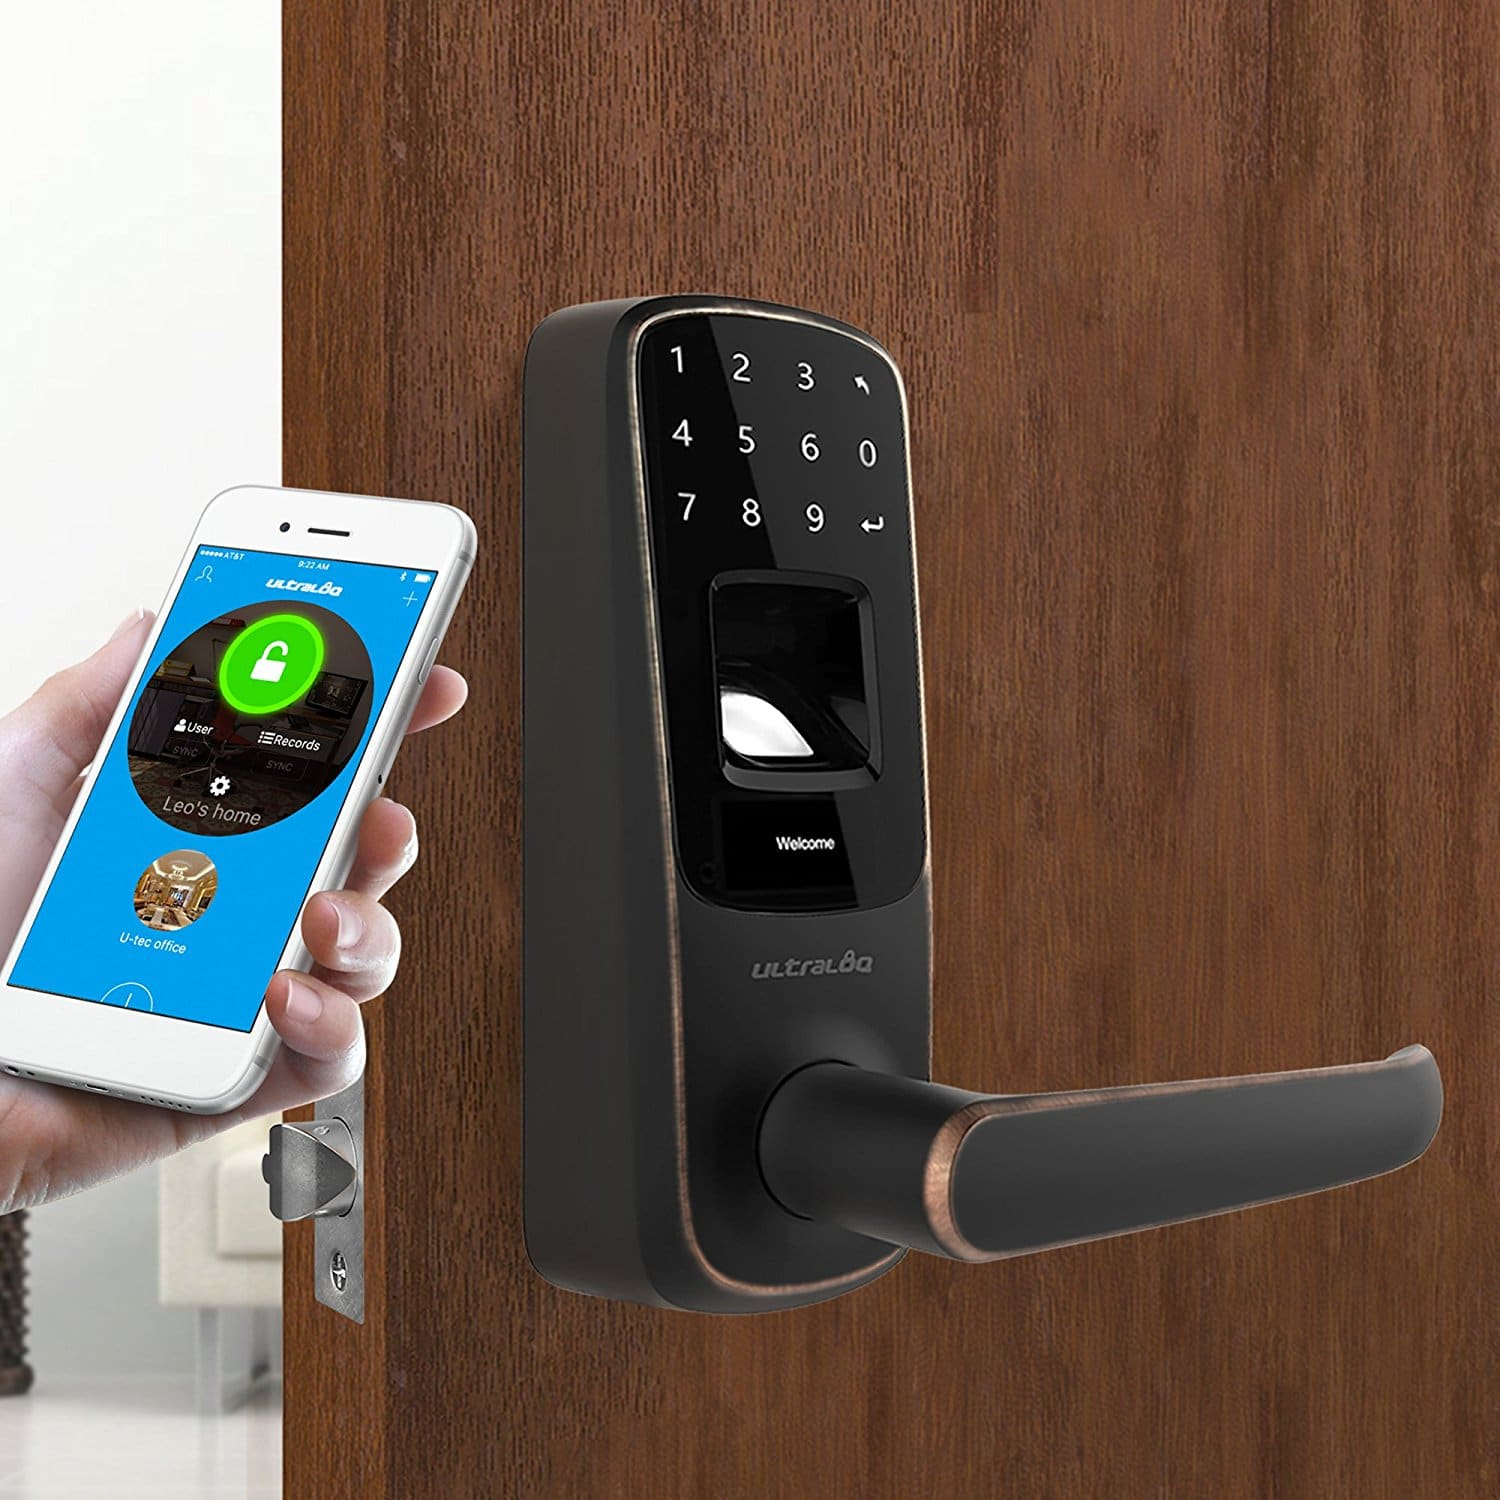 Best Smart Door Locks to Buy: Ultraloq UL3 BT Bluetooth Smart Lock